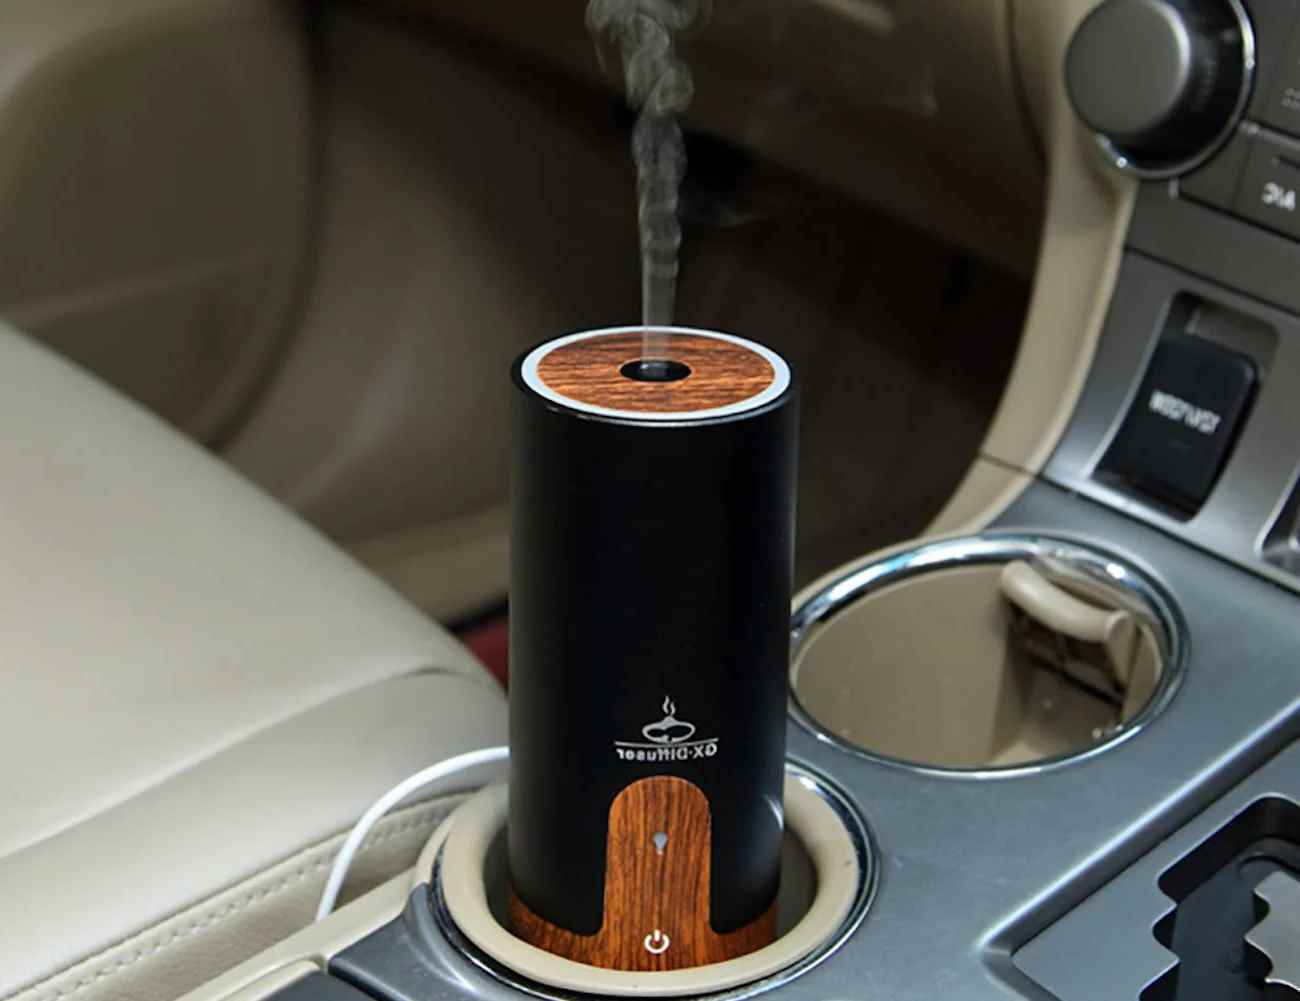 How to maintain the cleanliness of the car? Car Humidifiers!